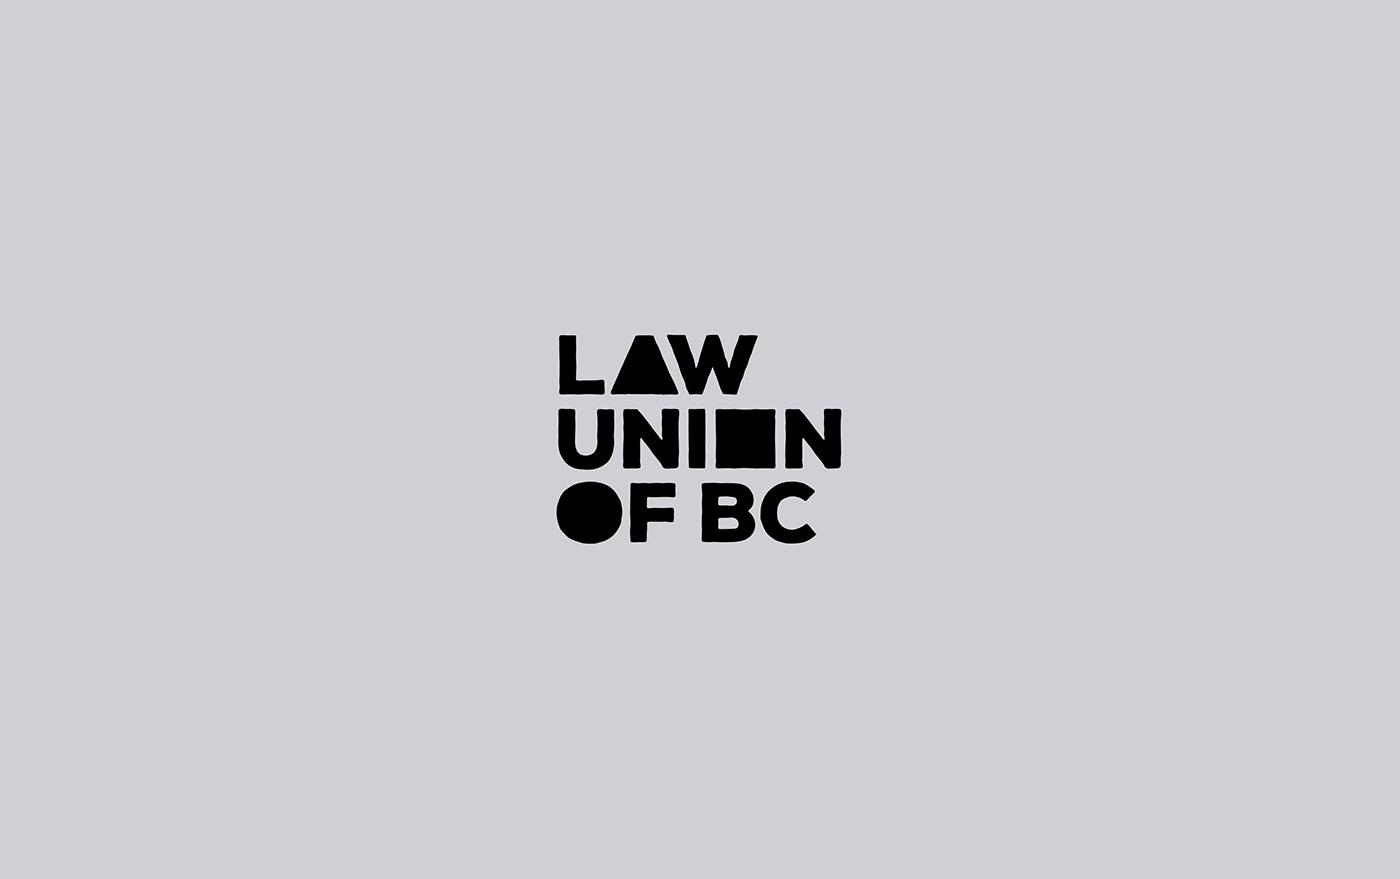 law union activism Social Justice law social change block type stamped shapes bold Design for Good